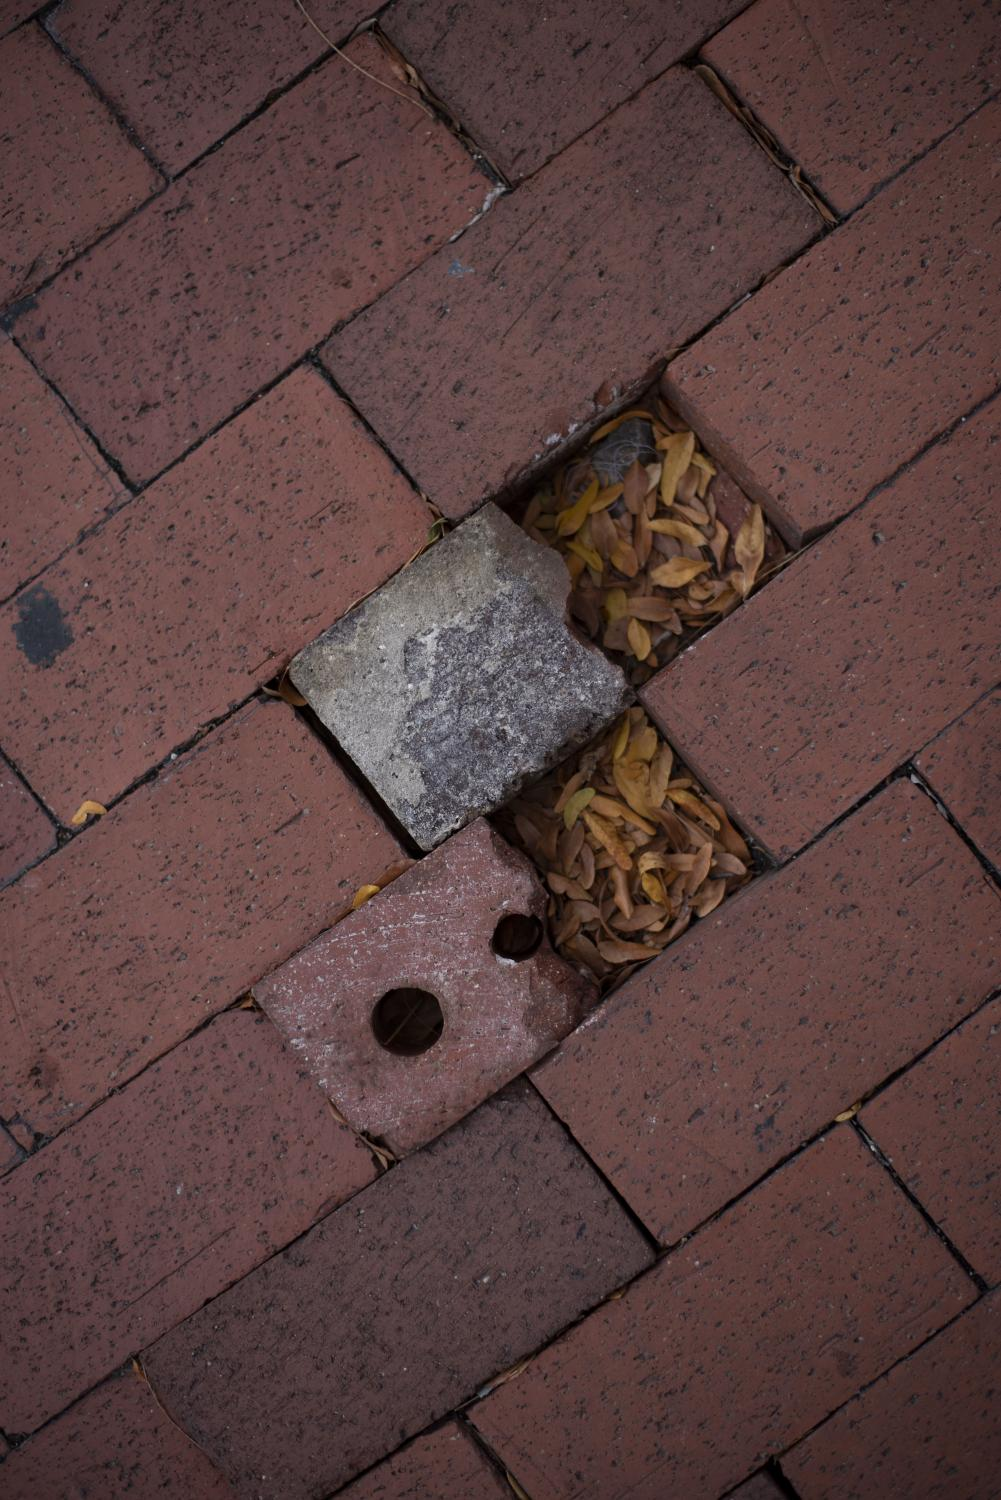 Missing brick halves are replaced by fallen leaves Oct. 5 in downtown Columbia, Mo.